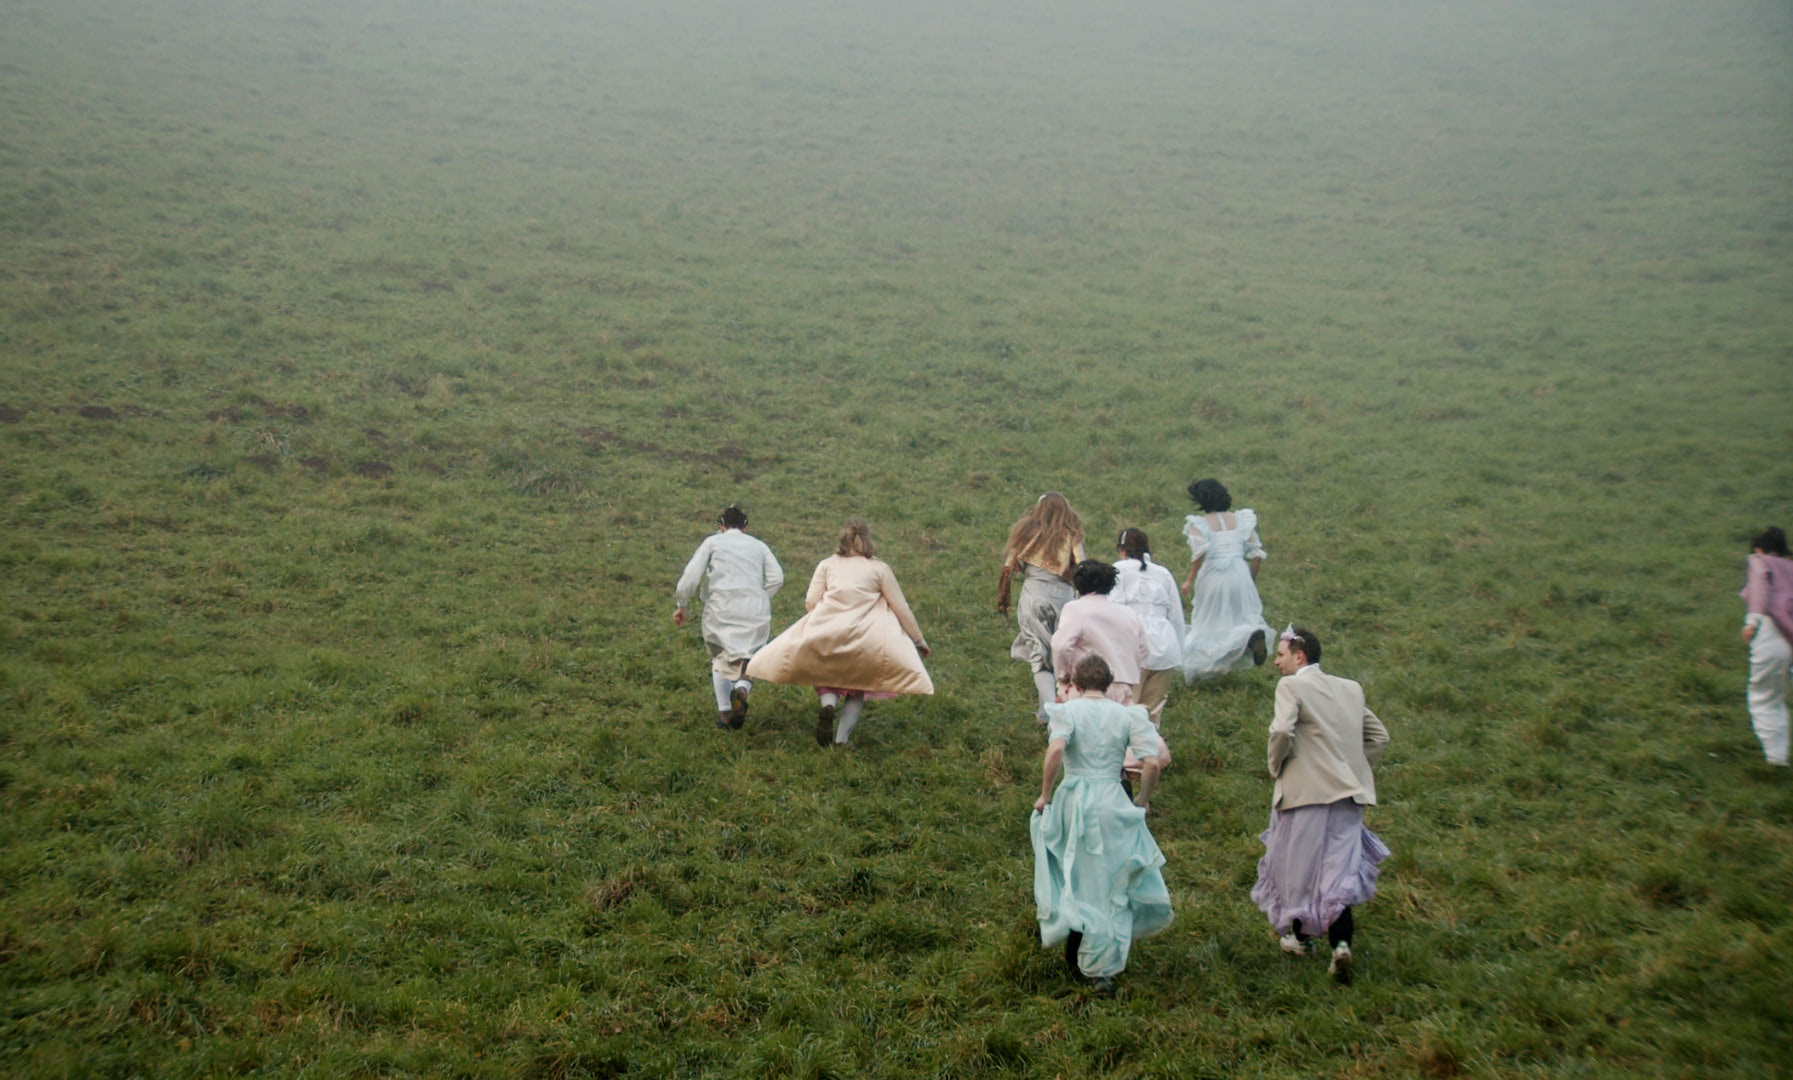 A crowd of people in white dresses running up a grassy hill in the fog.